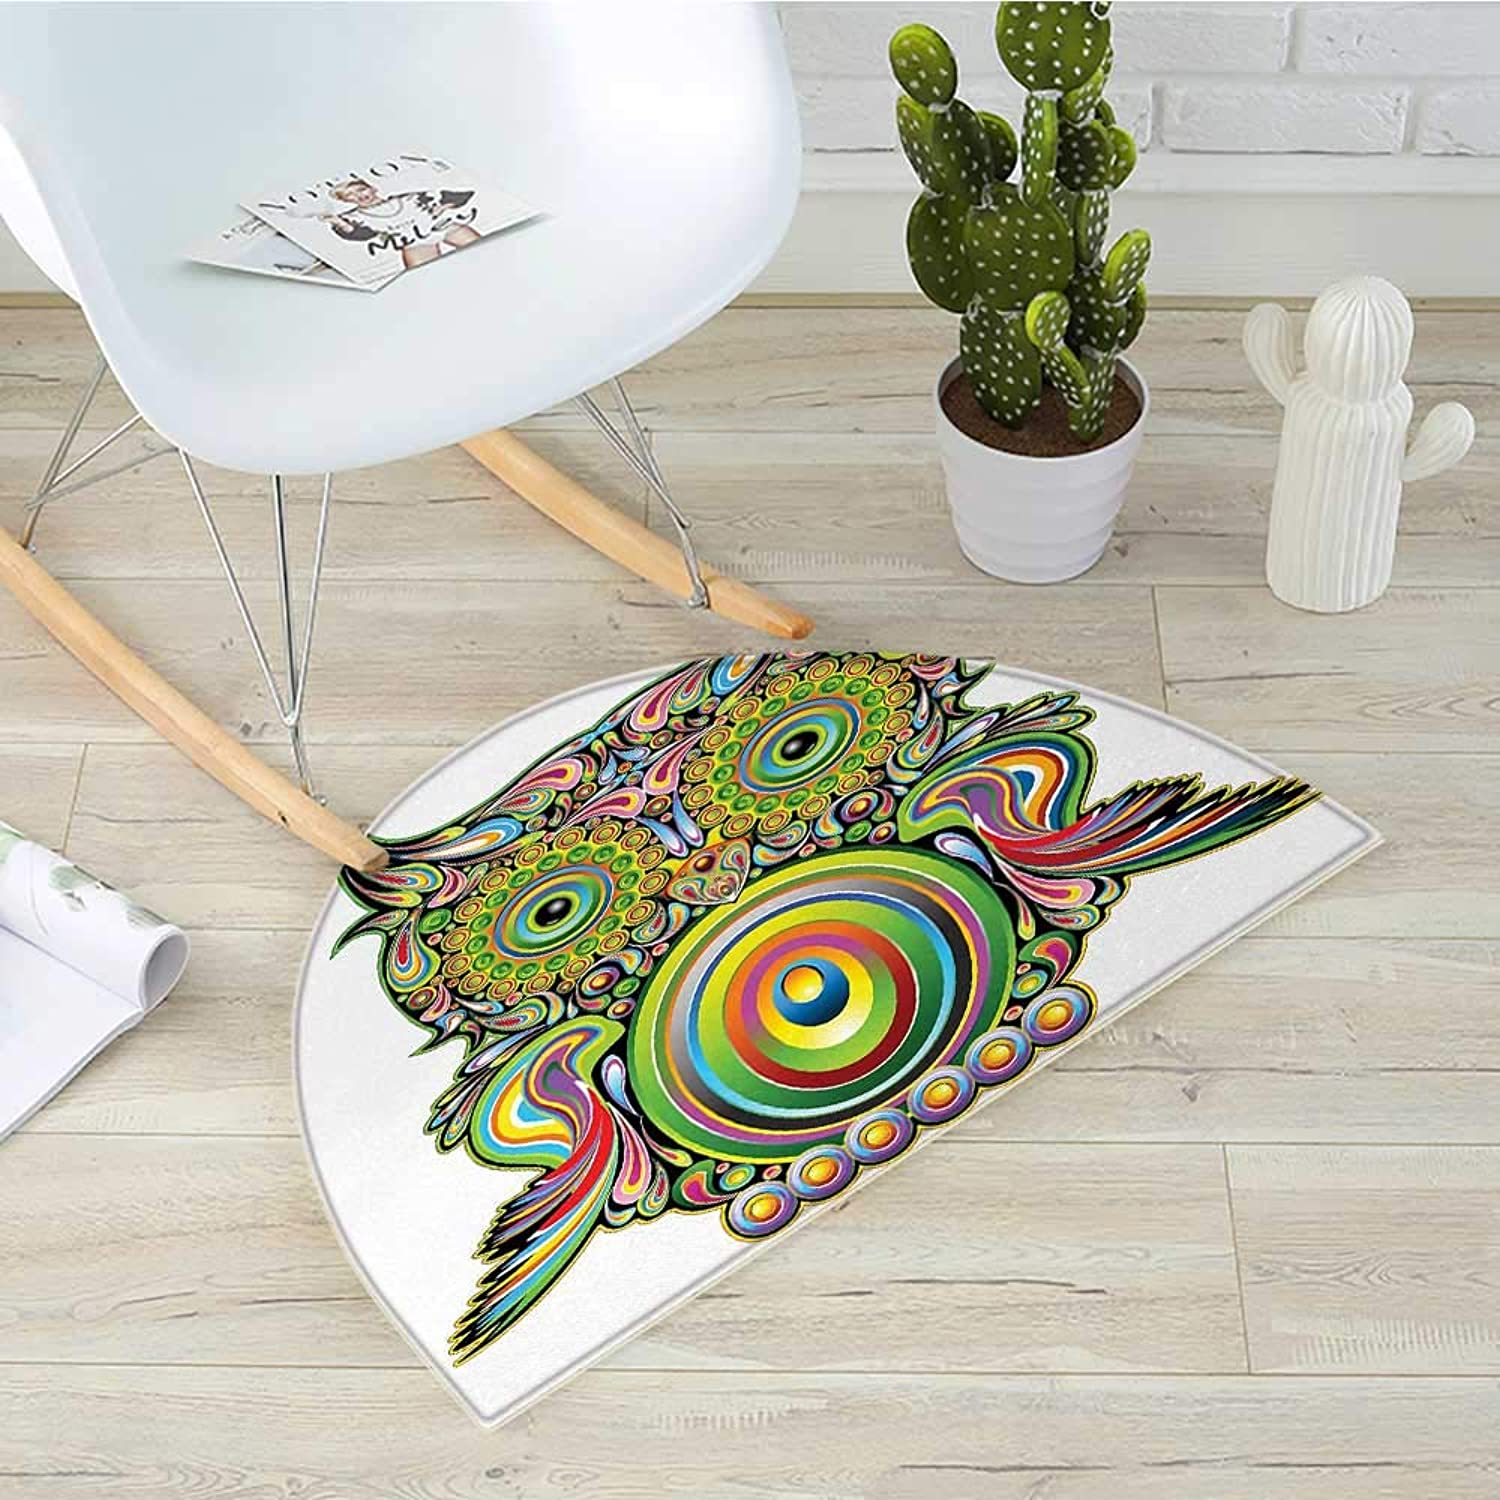 Owl Semicircular CushionOrnate colorful Owl with Ethnic Elements Legend Eye Feather of Universe Psychedelic Artwork Entry Door Mat H 27.5  xD 41.3  Multi